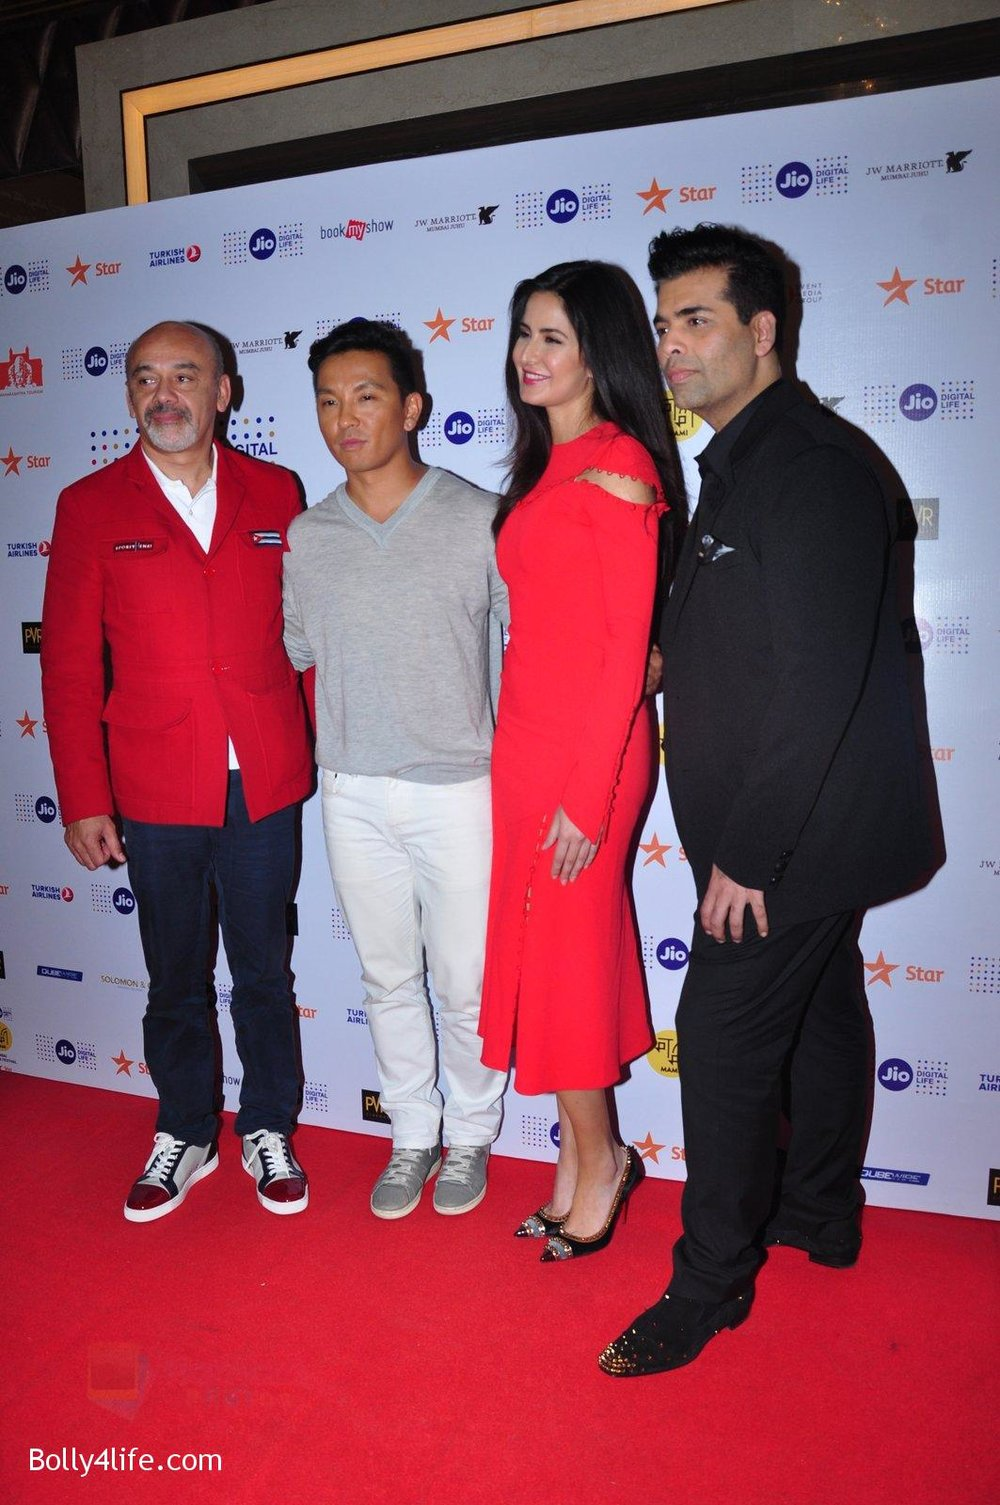 Katrina-Kaif-Karan-Johar-grace-a-discussion-at-the-MAMI-18th-Mumbai-Film-Festival-2016-on-27th-Oct-2016-15.jpg